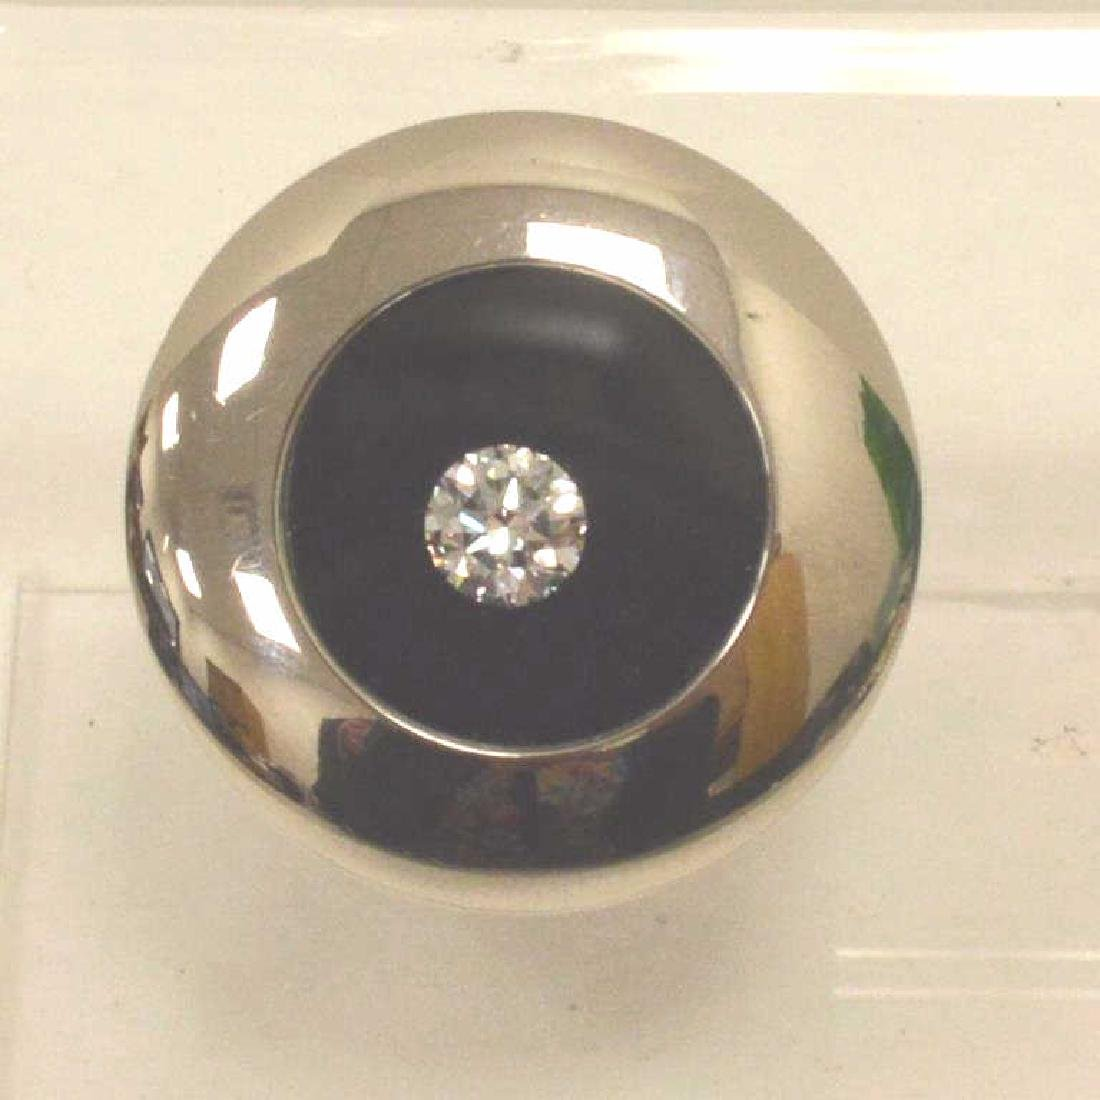 Loose 1.00ct Round Brilliant Diamond F/VS1 GIA - 4